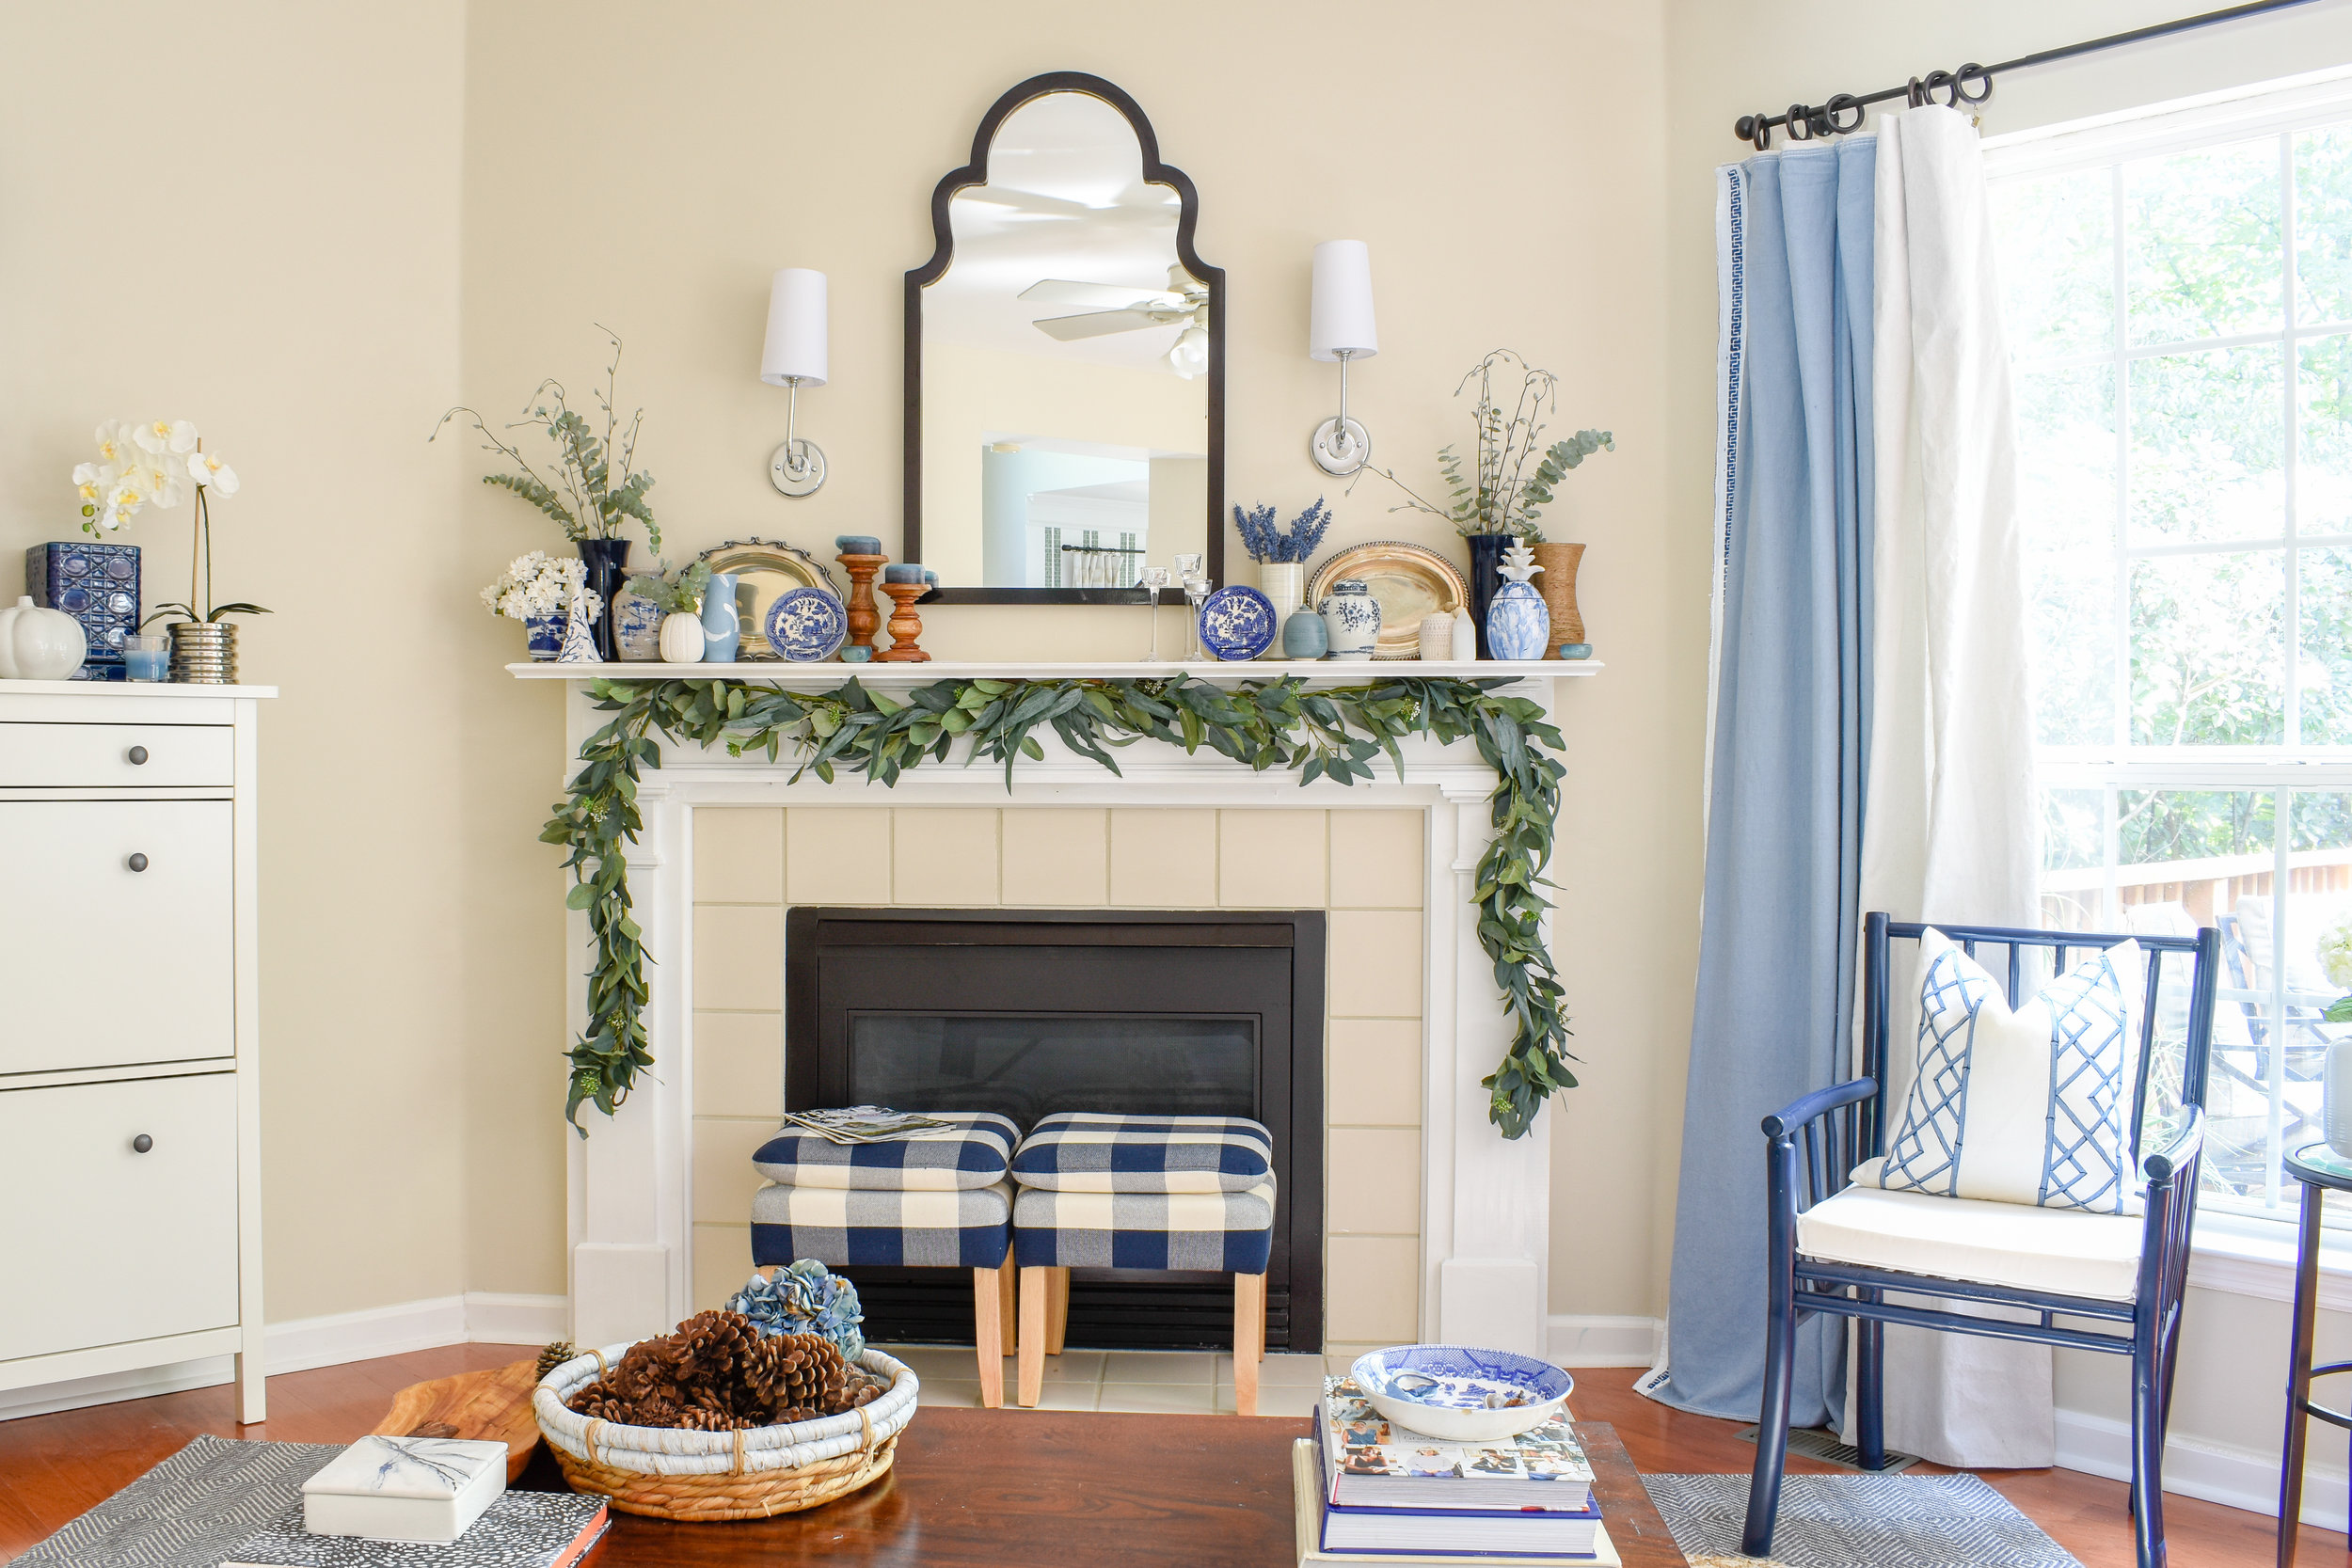 traditional living room mantel display - transitional style